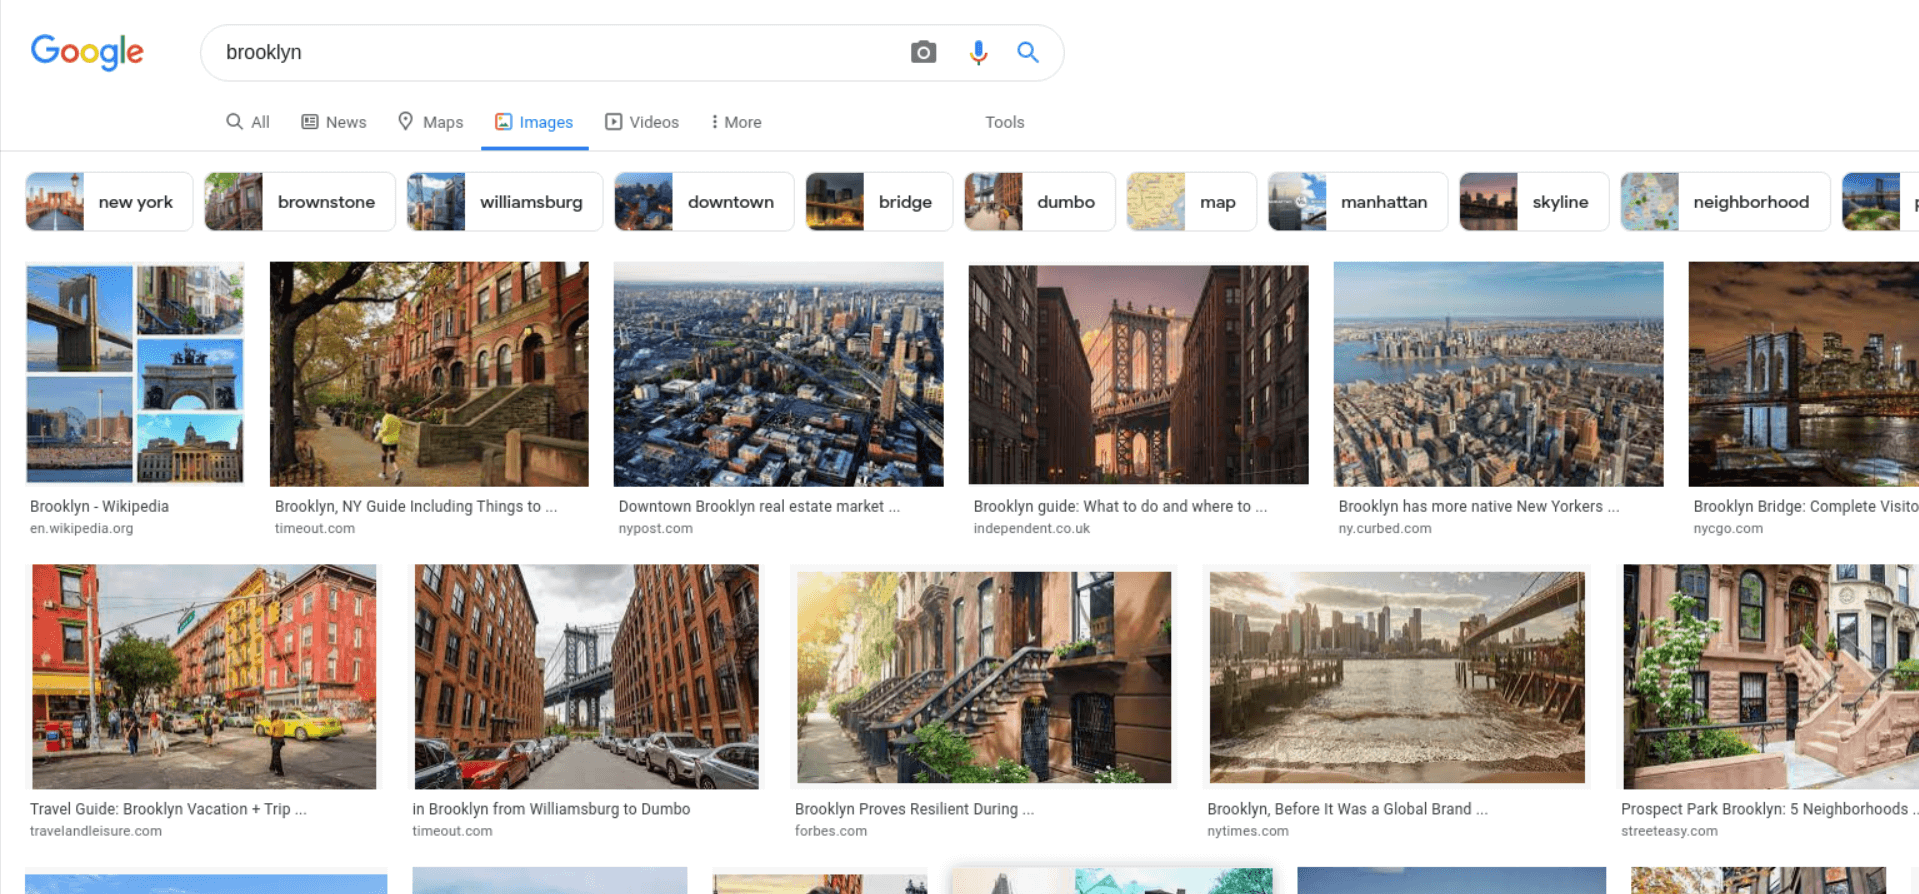 Image Results example